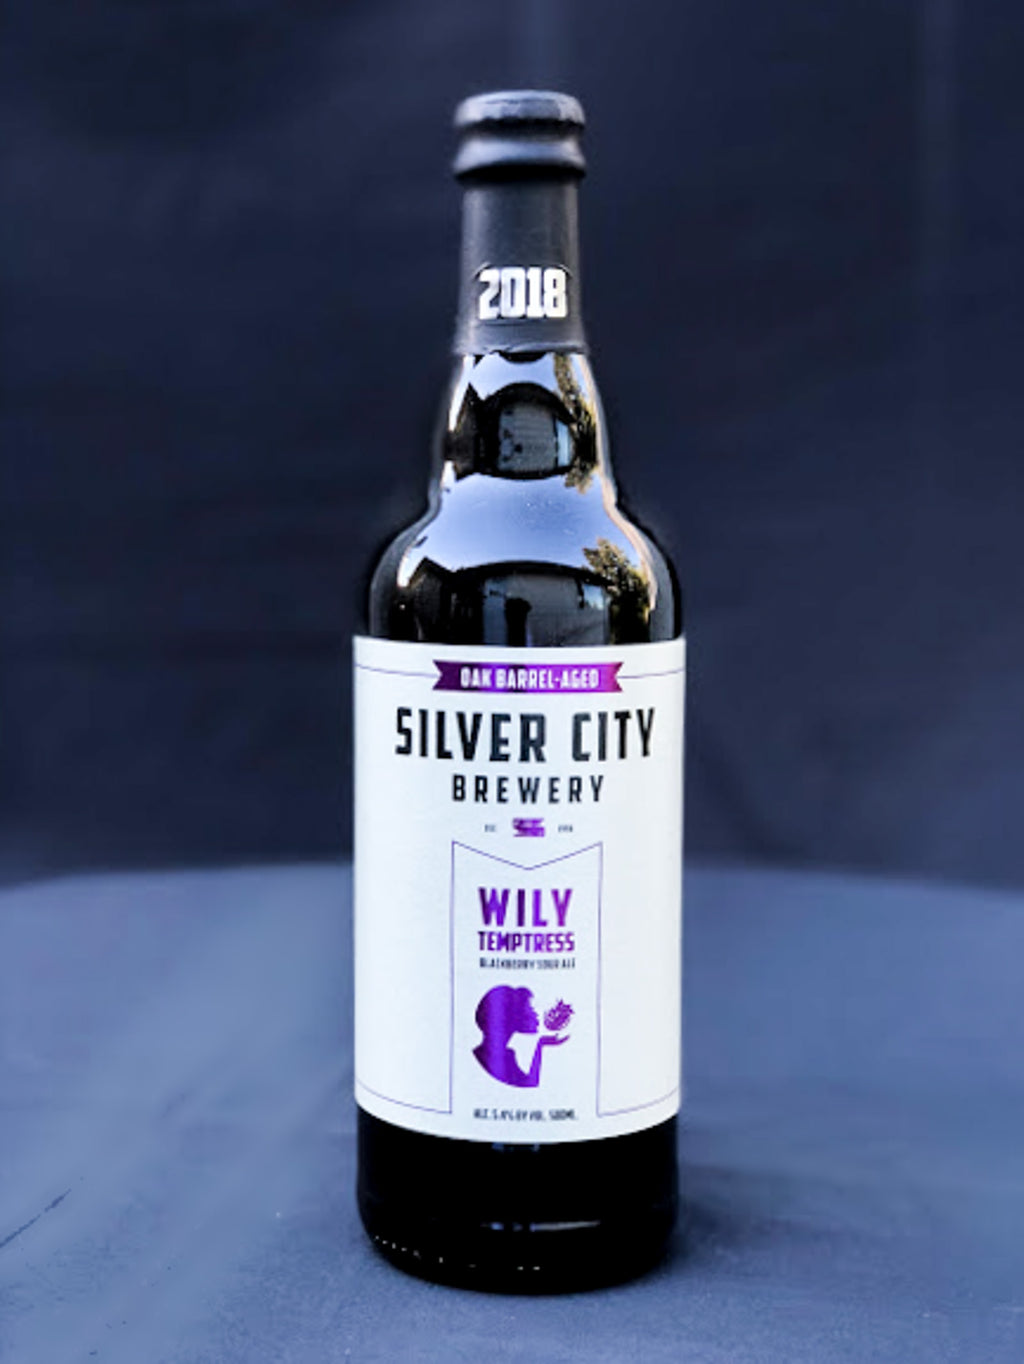 Silver City Wily Temptress Barrel-Aged Blackberry Sour Ale